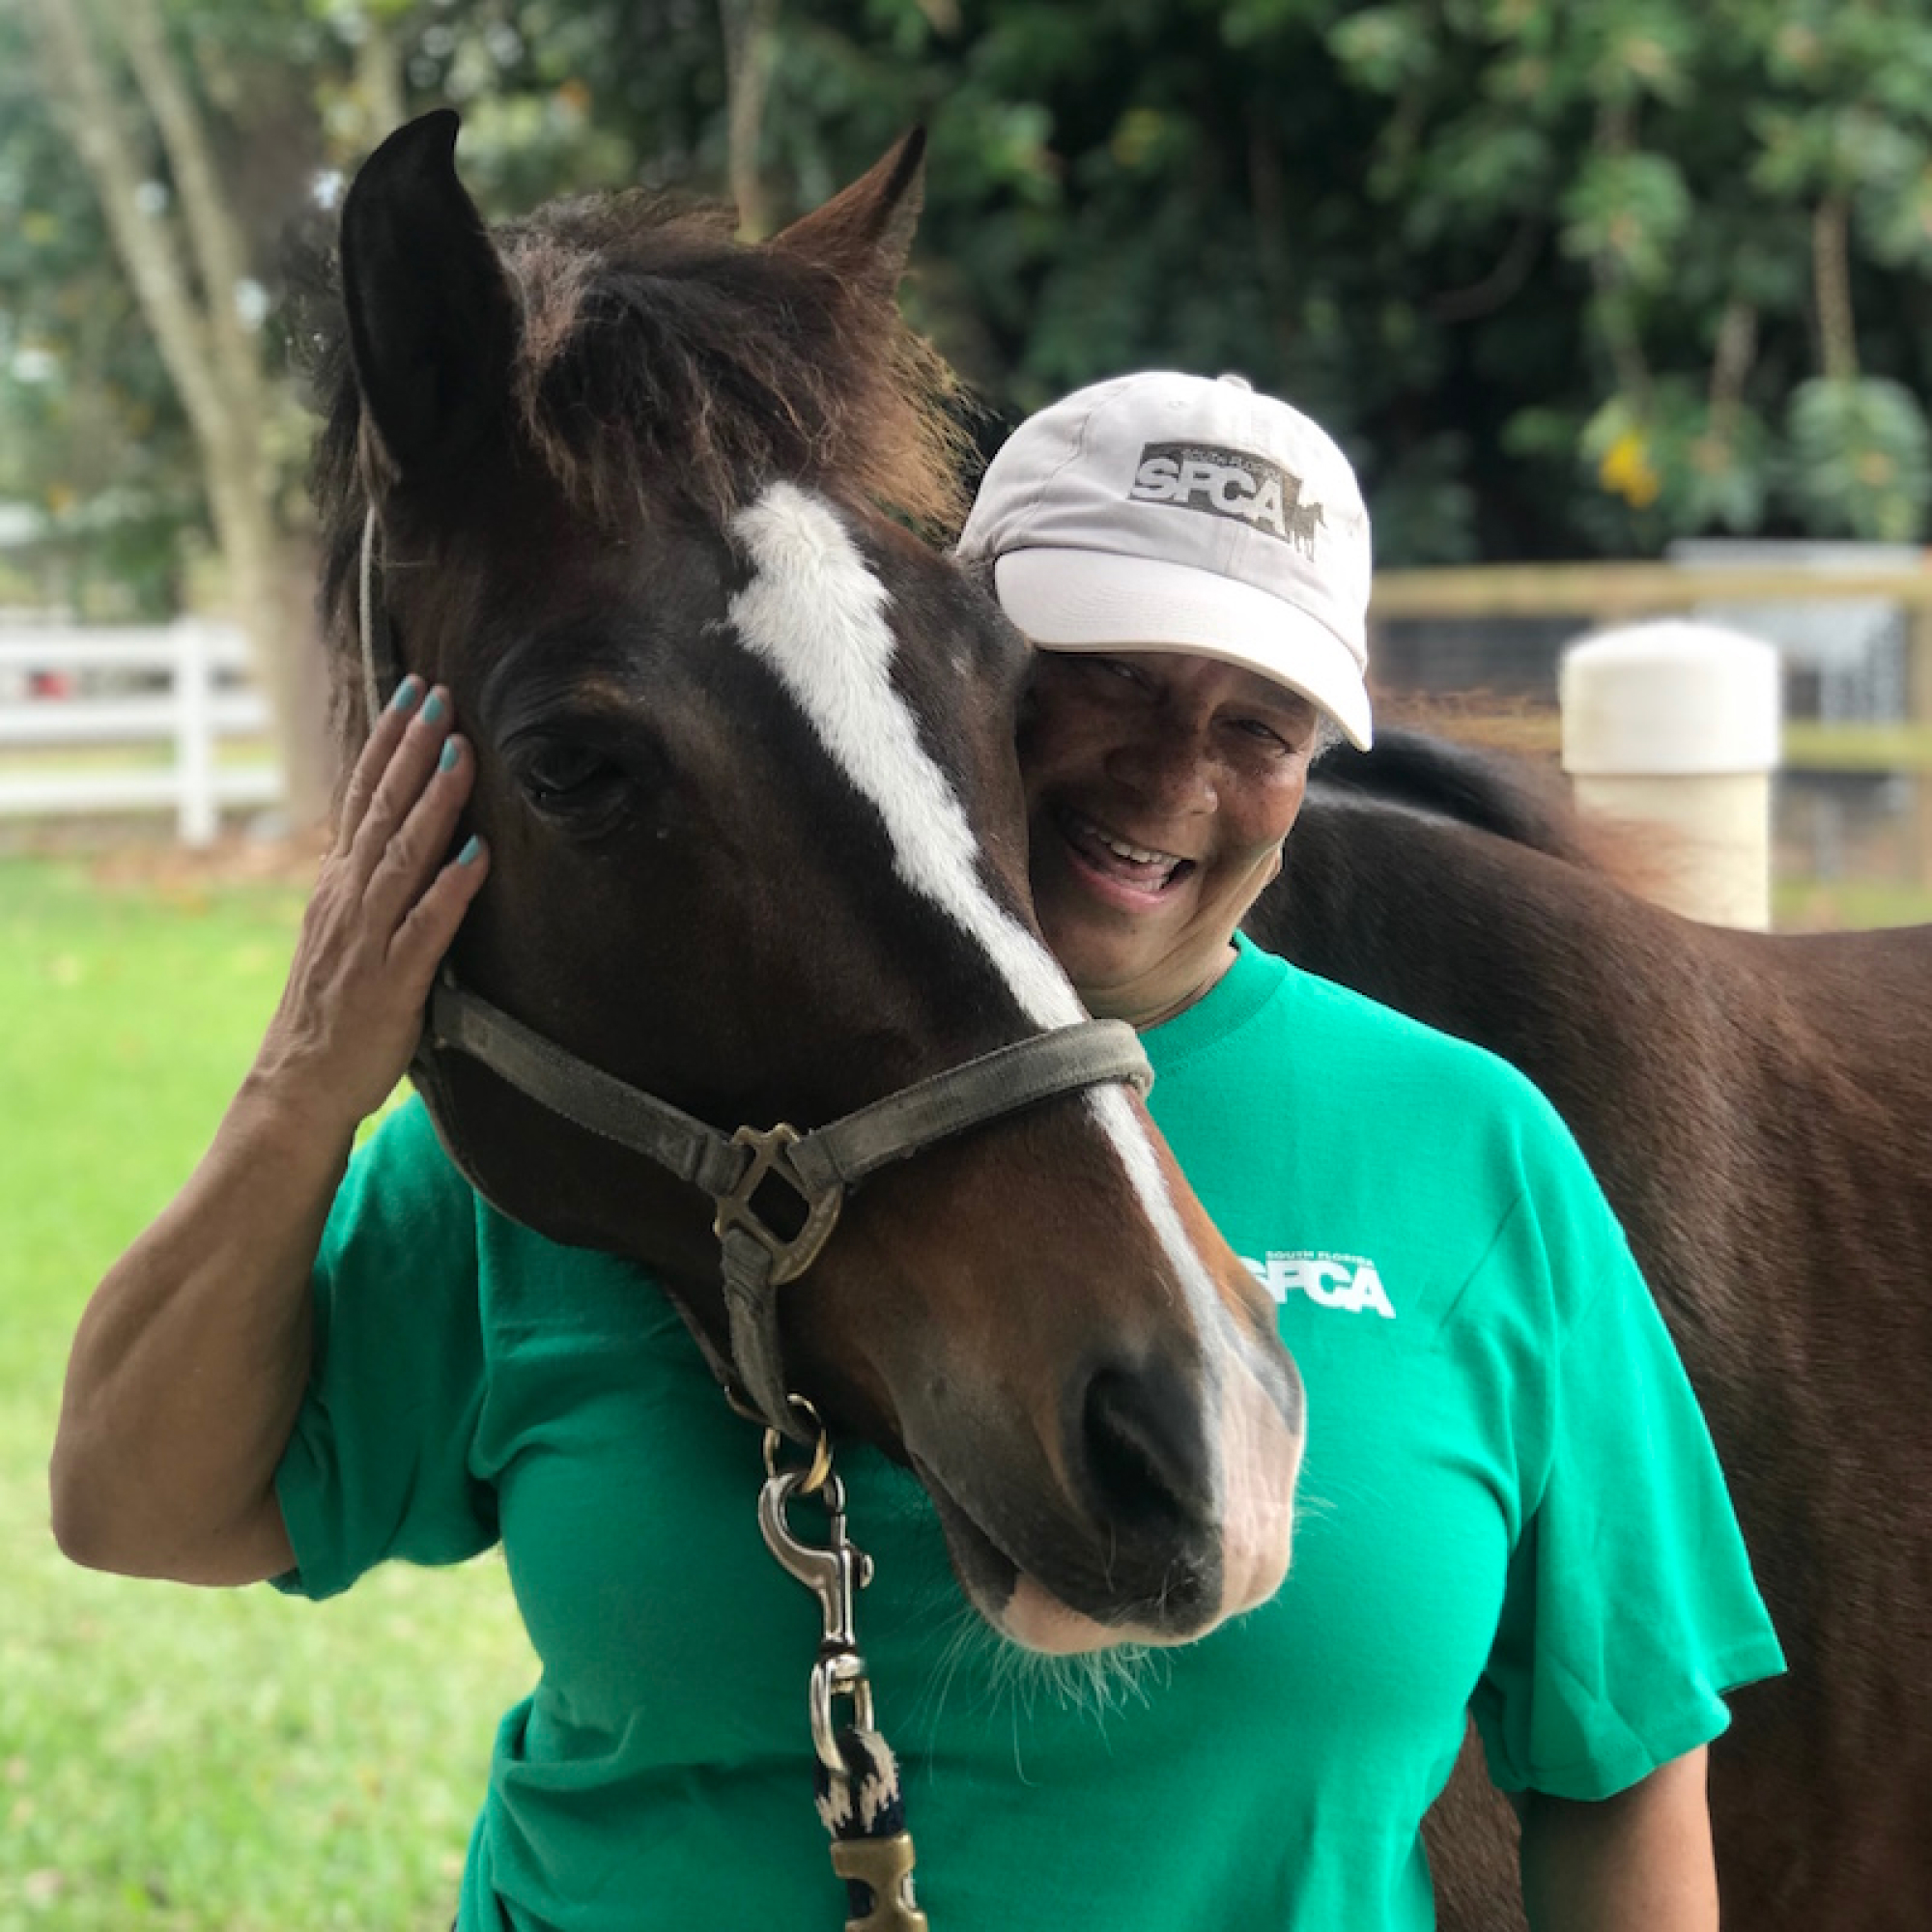 Volunteer at the South Florida Society for the Prevention of Cruelty to Animals